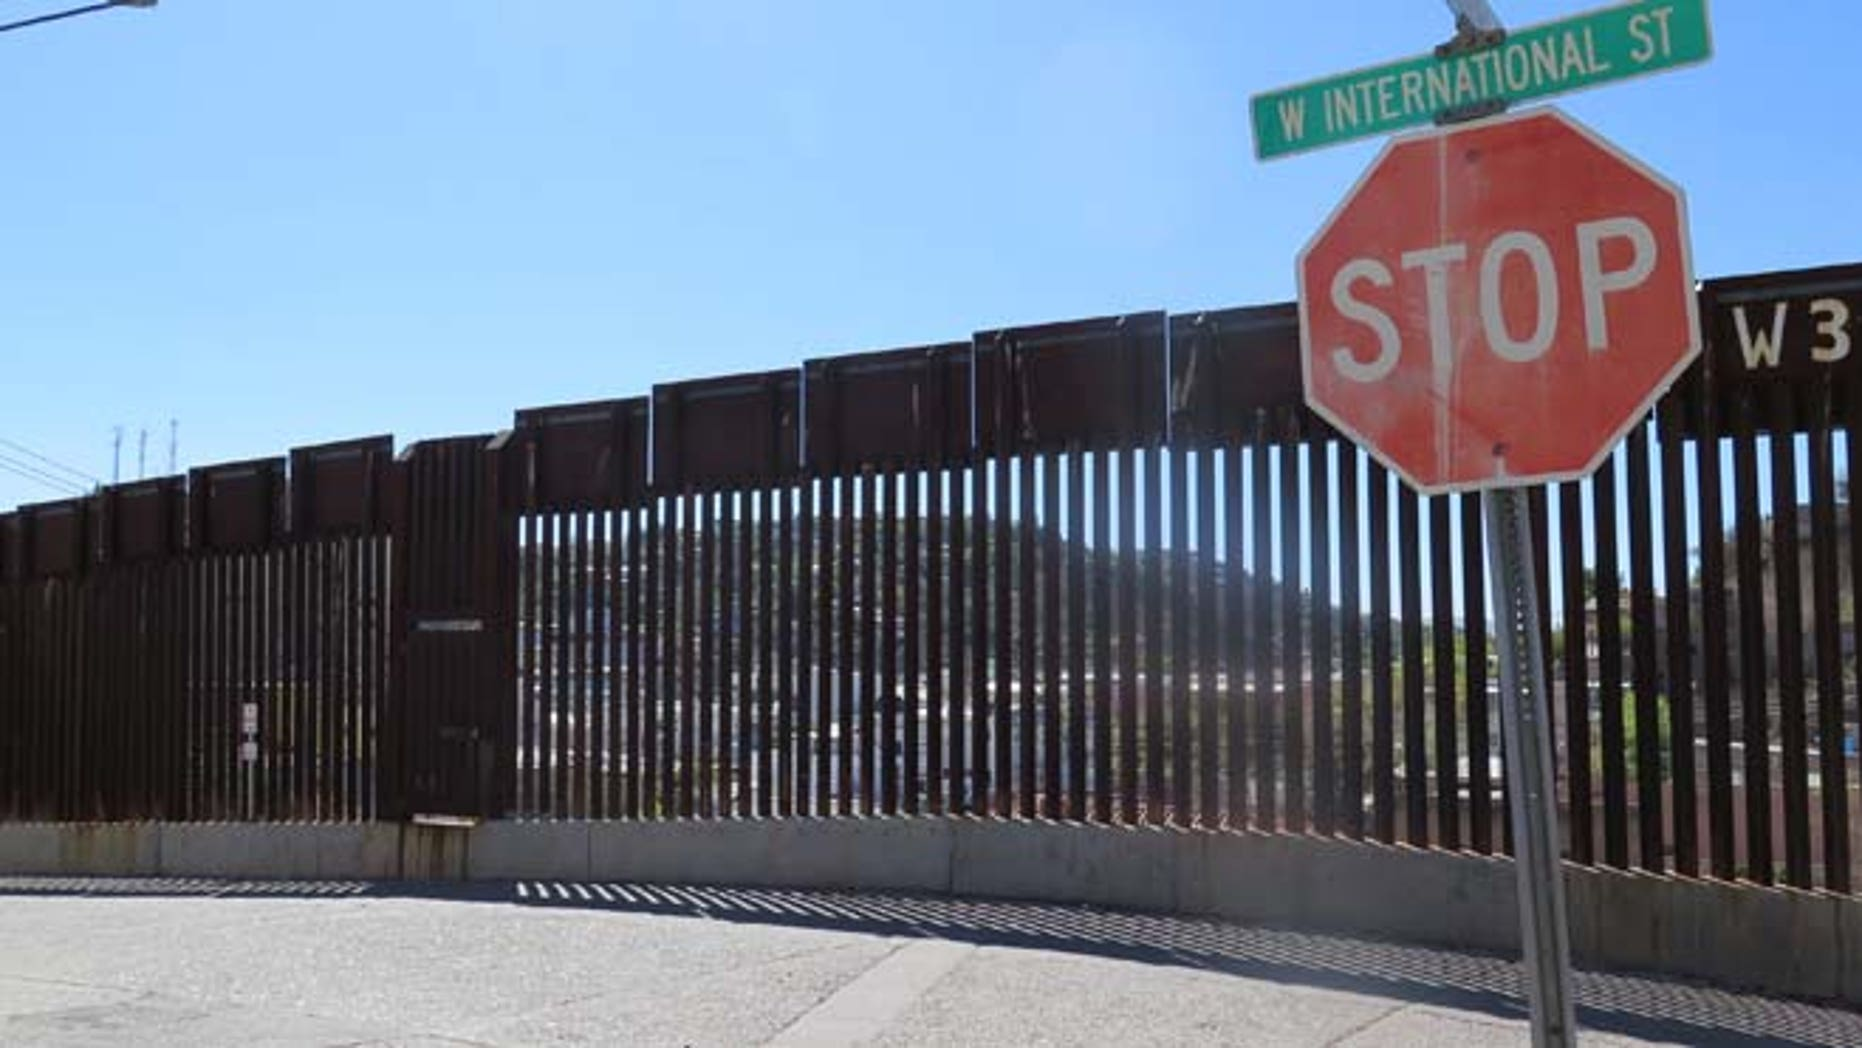 A stop sign in front of the international border fence in Nogales, Ariz.